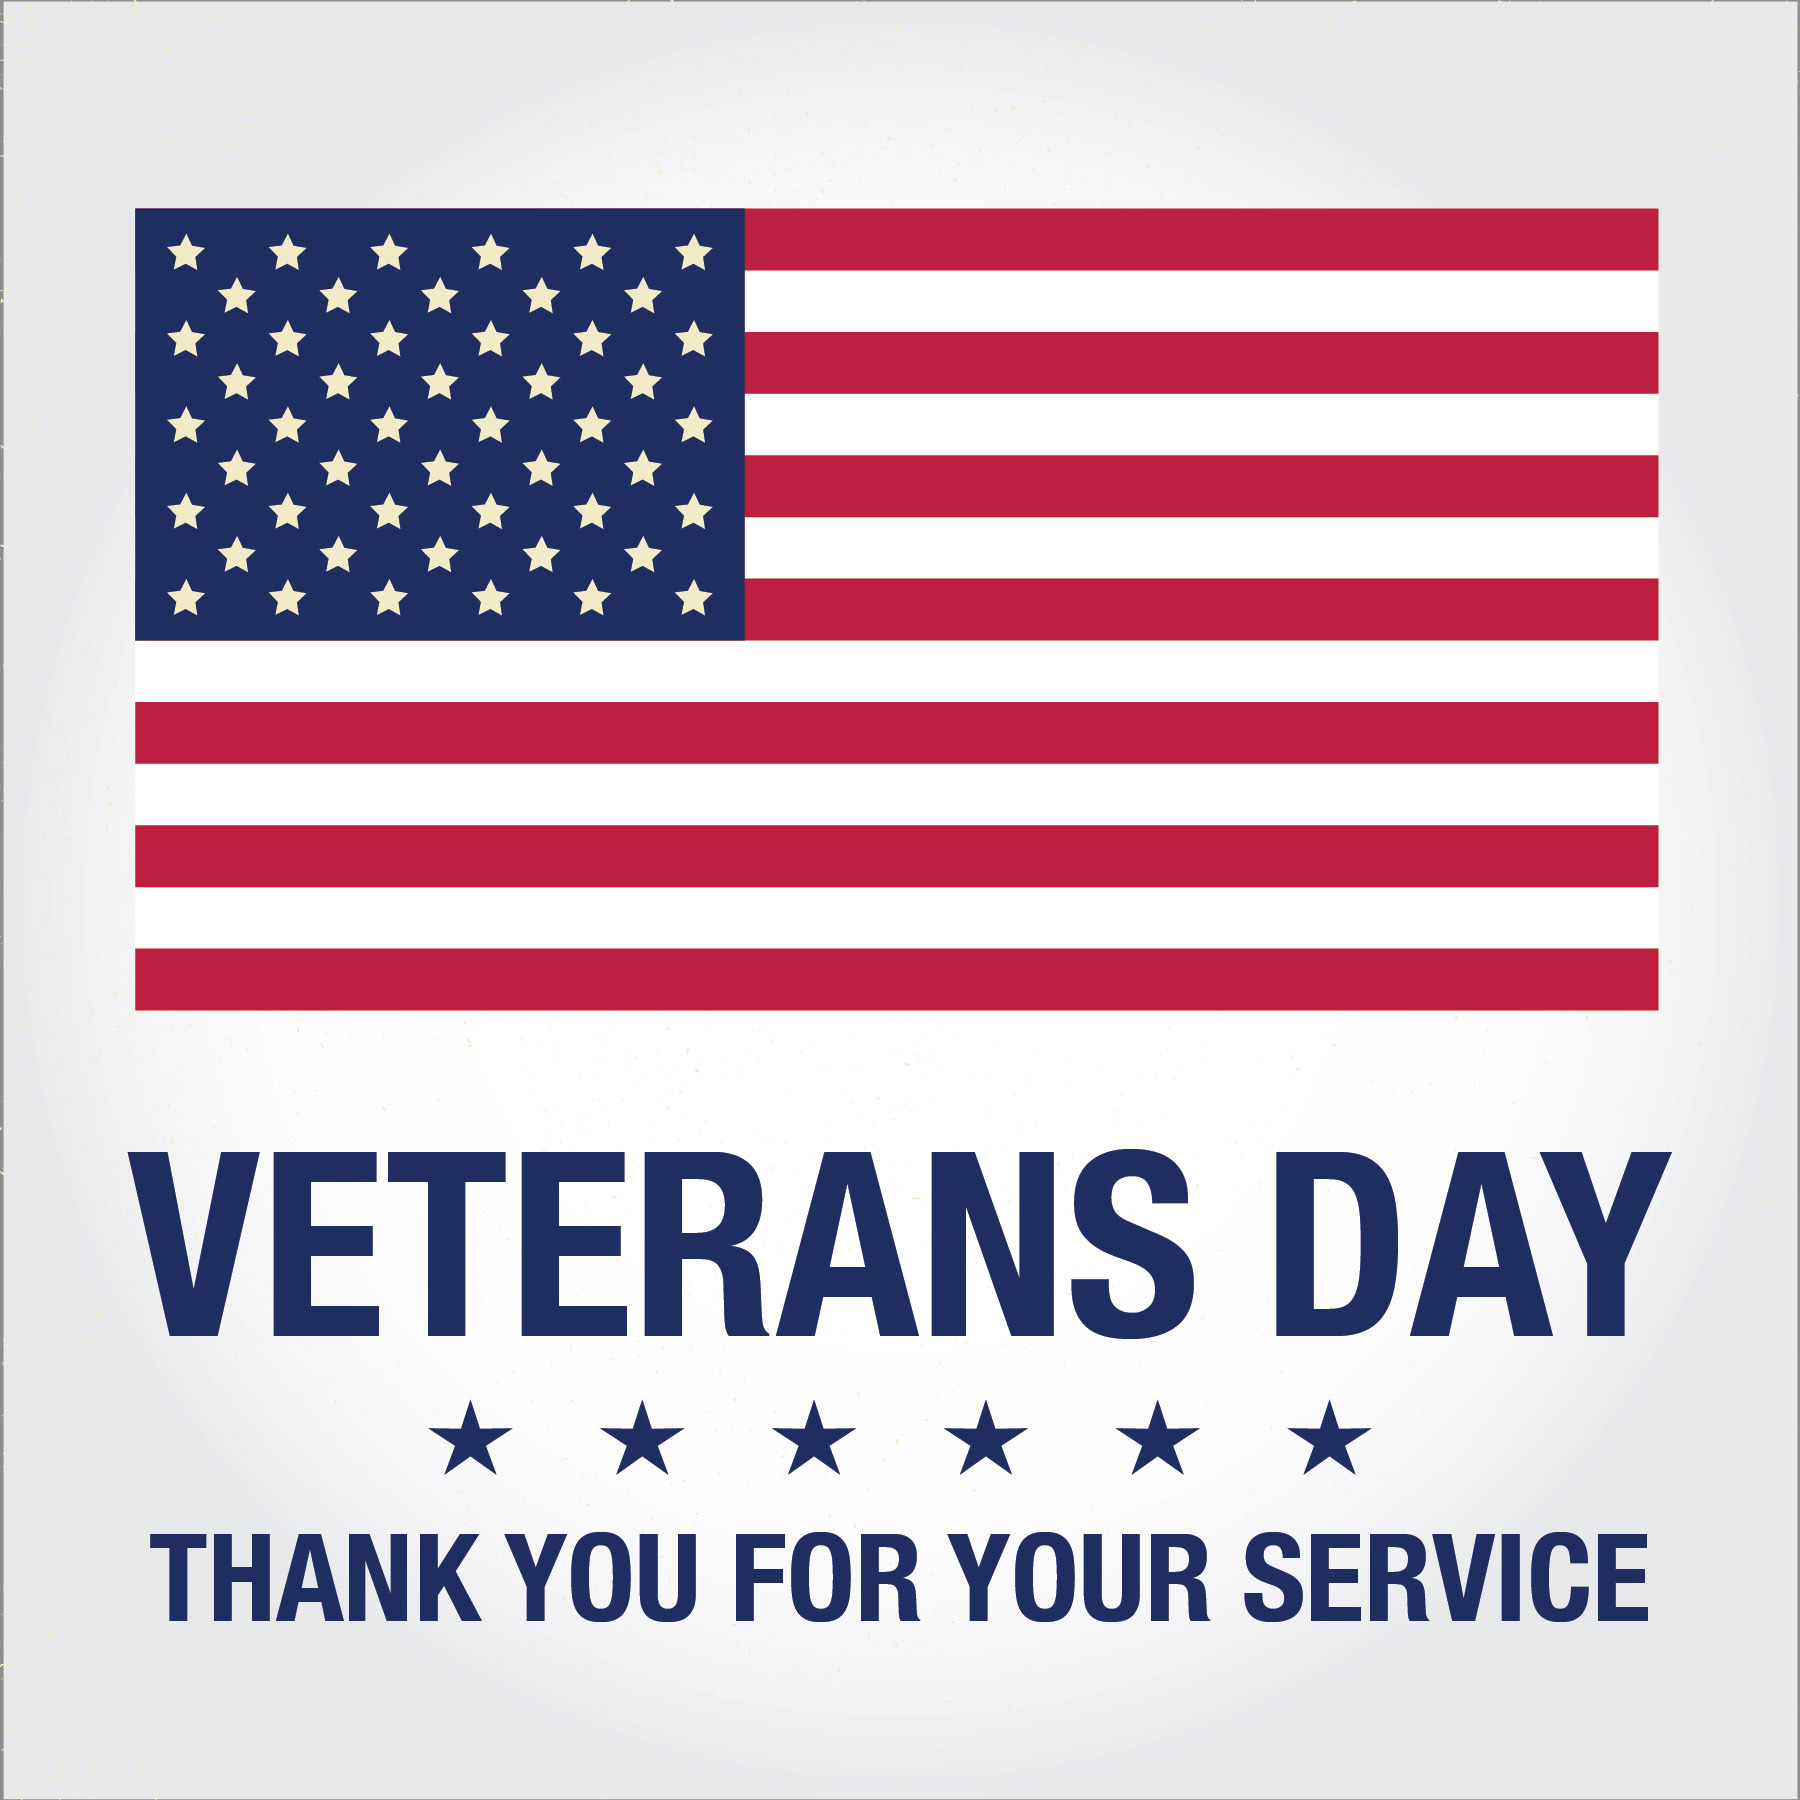 Advanced Remarketing Services is Proud of Co-Workers on Veteran's Day